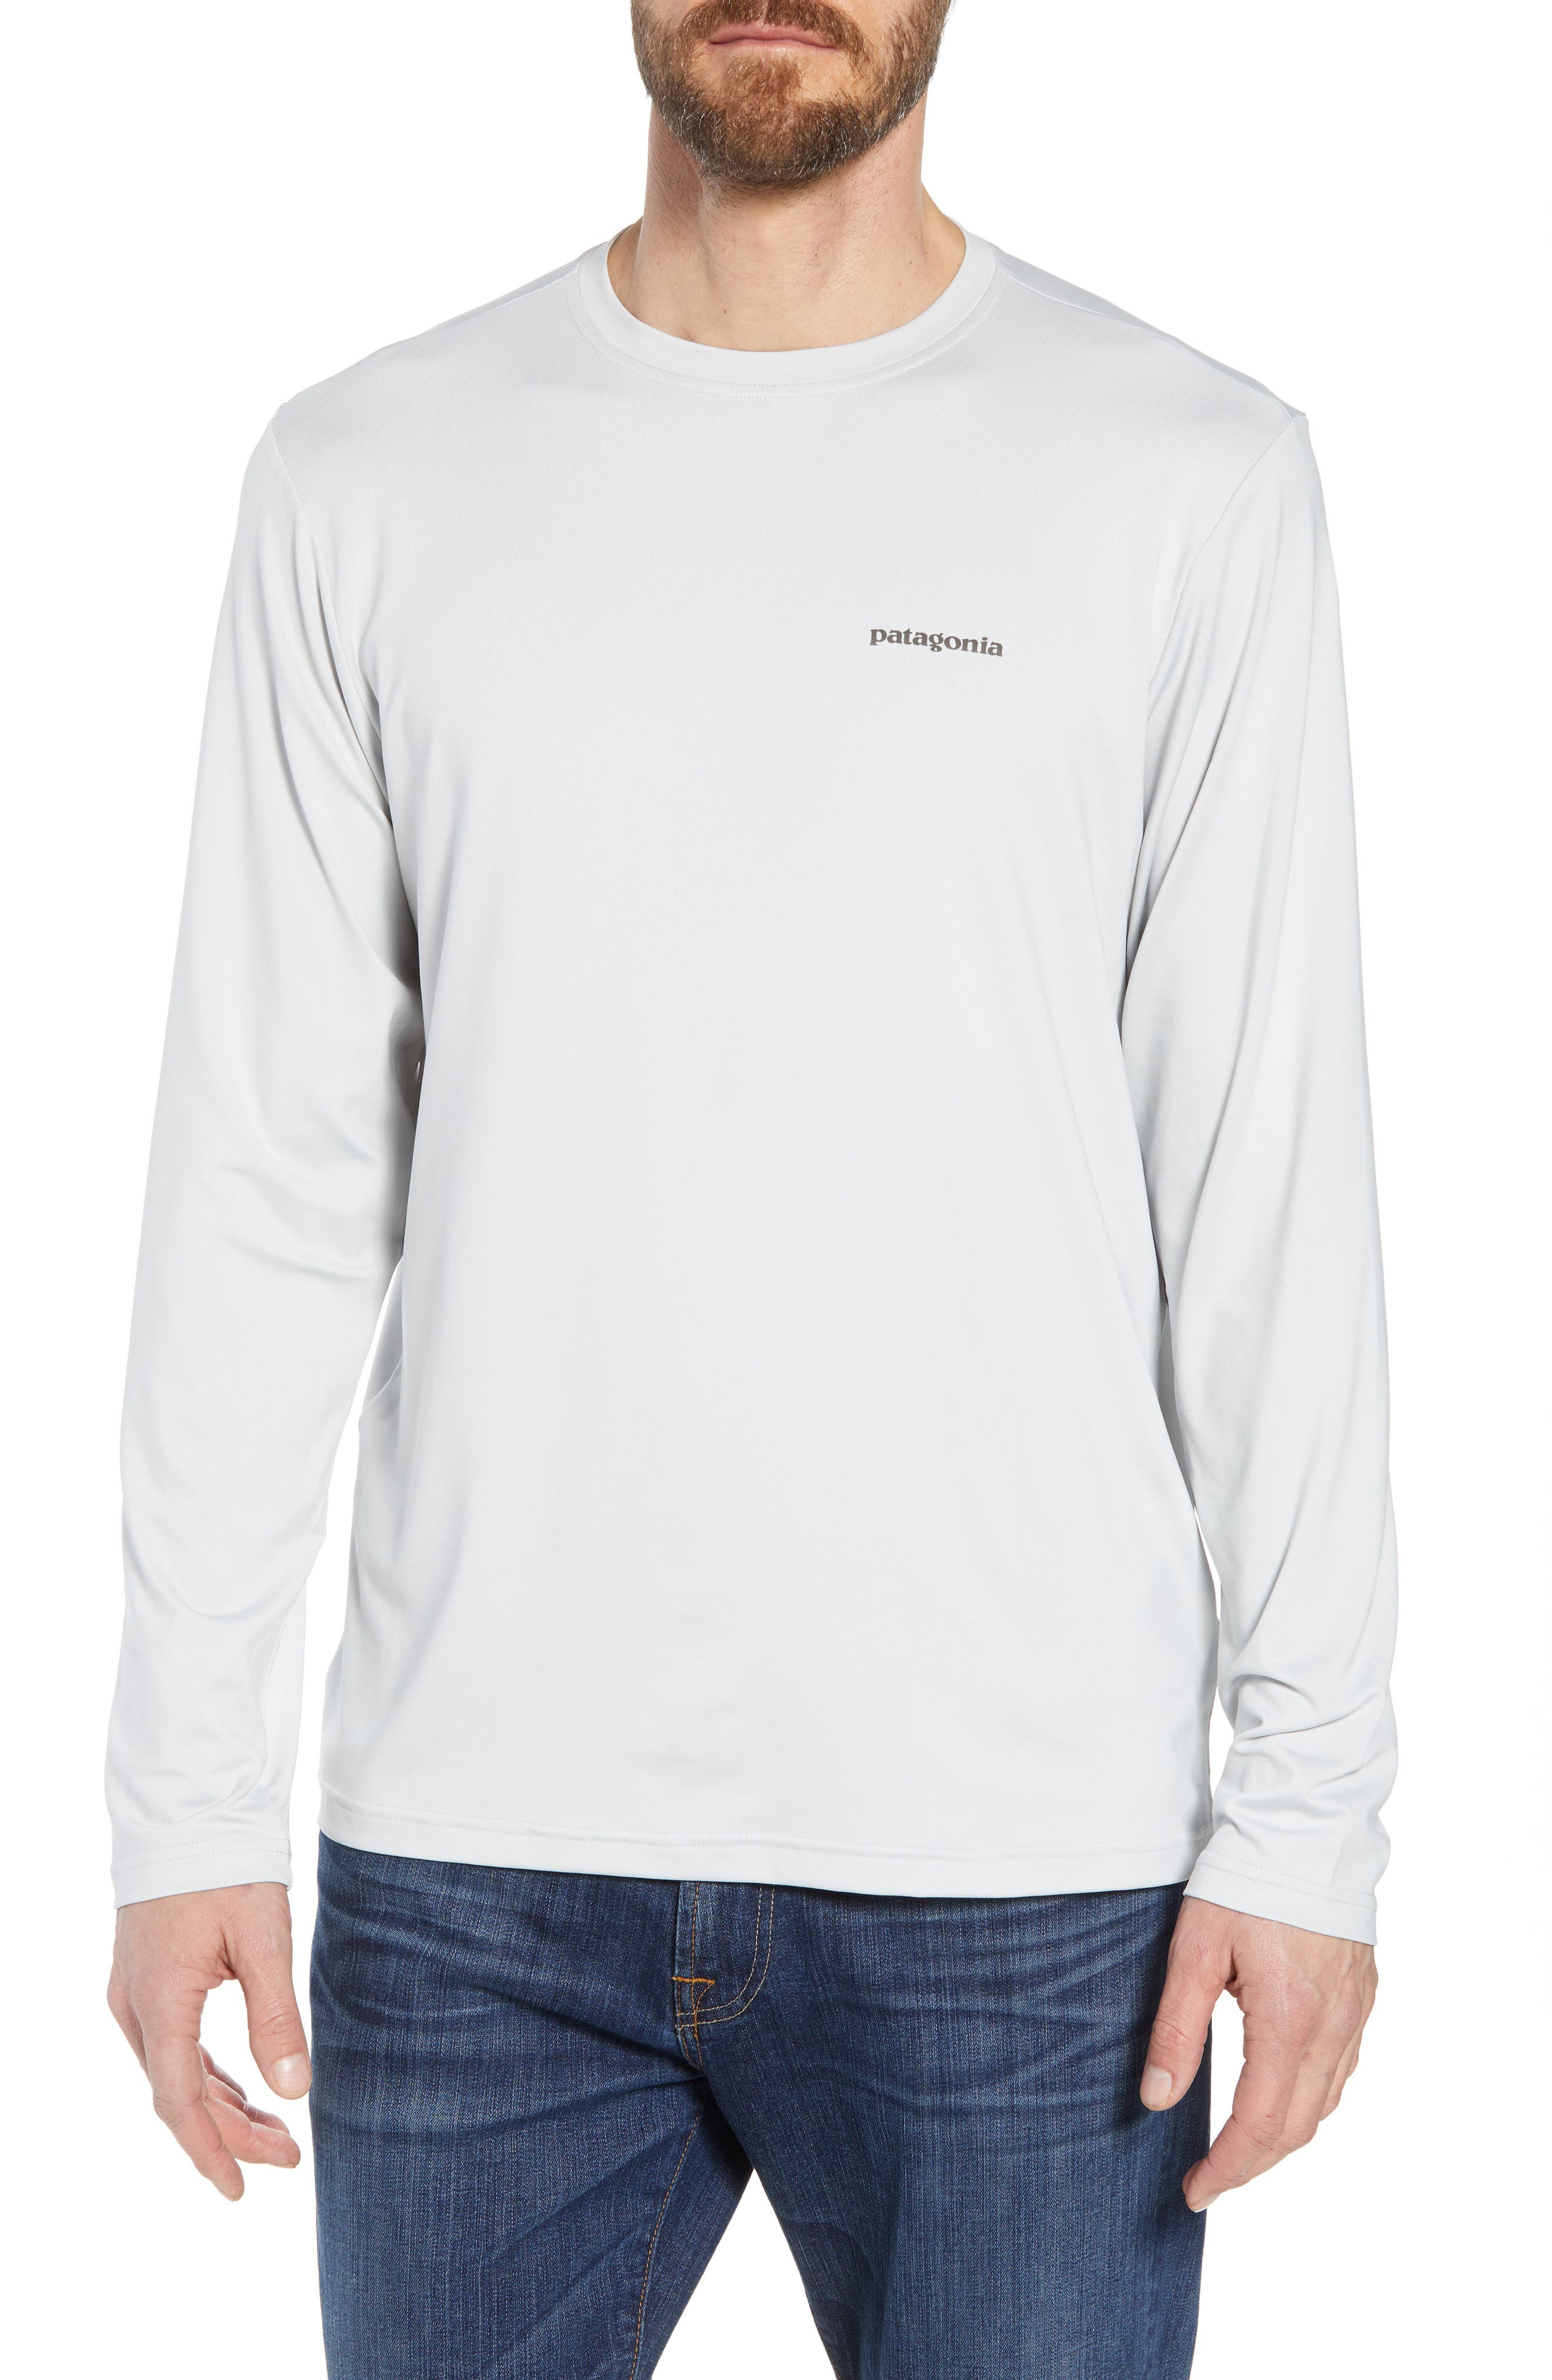 Patagonia Tech Fish Graphic Long Sleeve T-Shirt